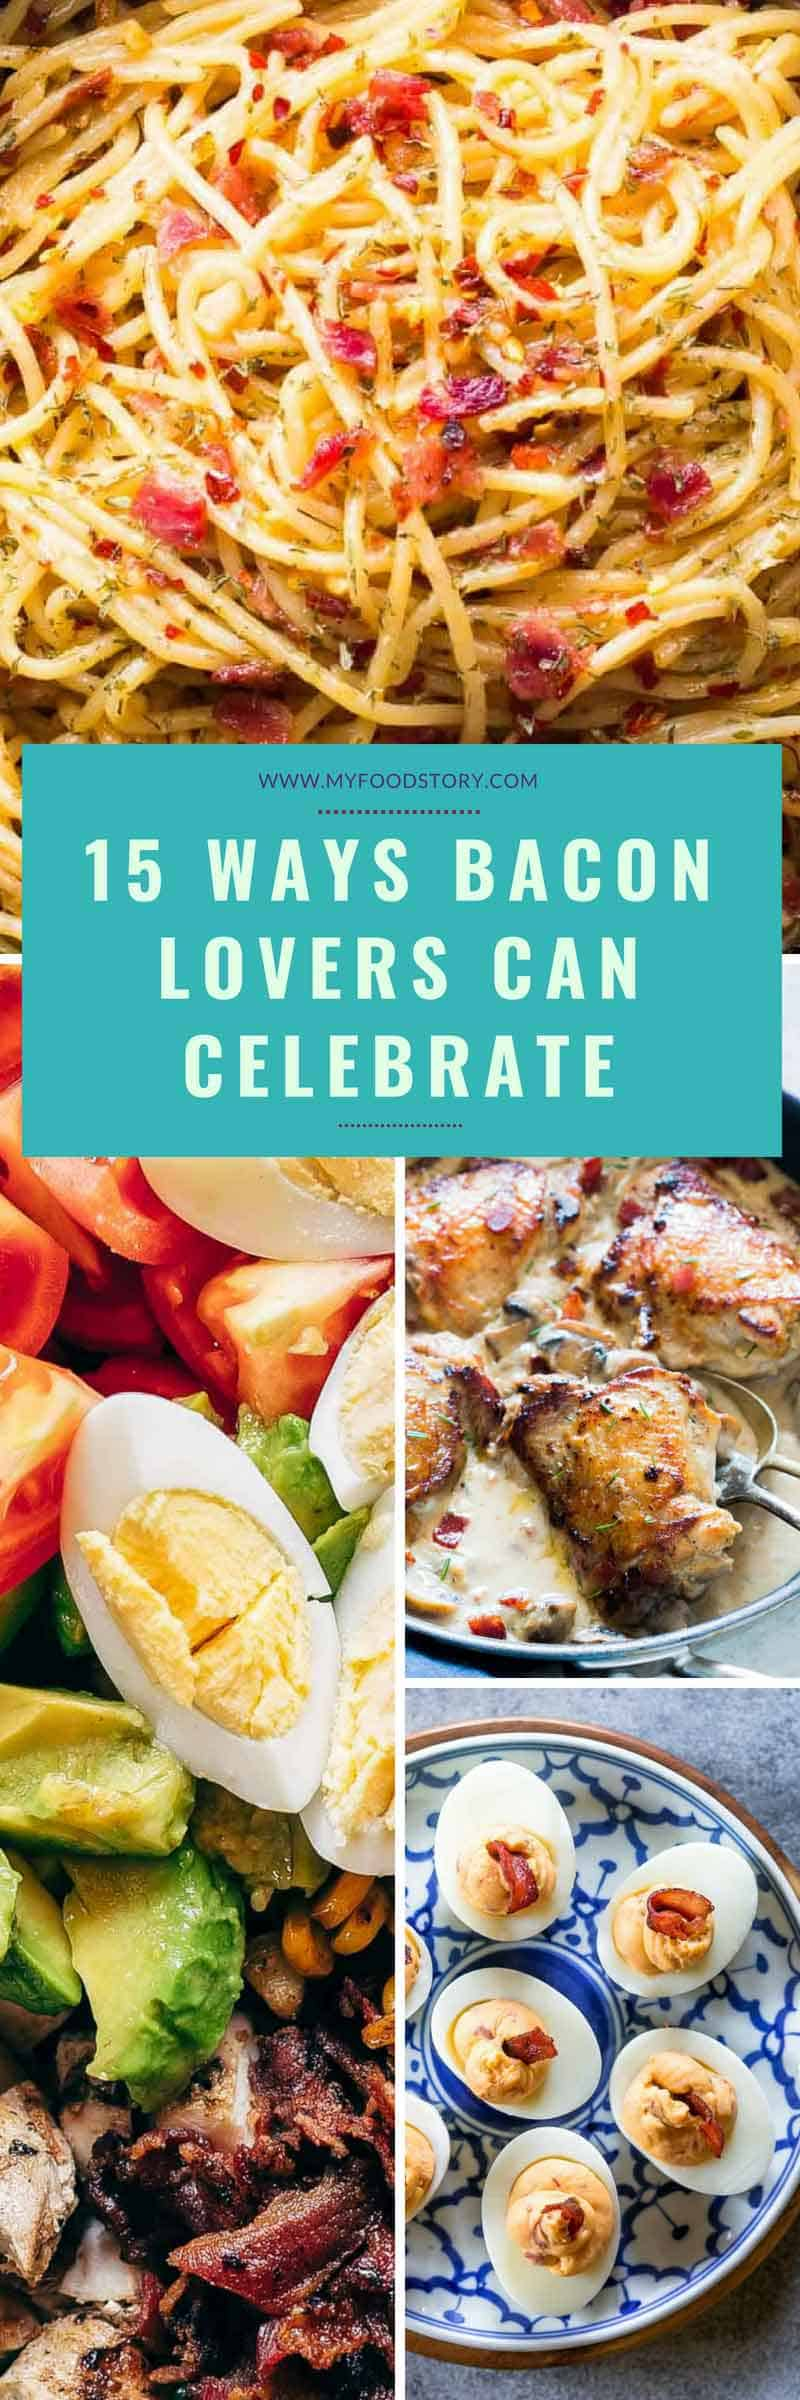 A roundup of 15 insanely delicious bacon recipes that are sure to make you crave some bacon ASAP! Add bacon to pasta, salads, breakfast and see how it makes everything better. #bacon #recipe #pork #pasta #lunch #salad #myfoodstory